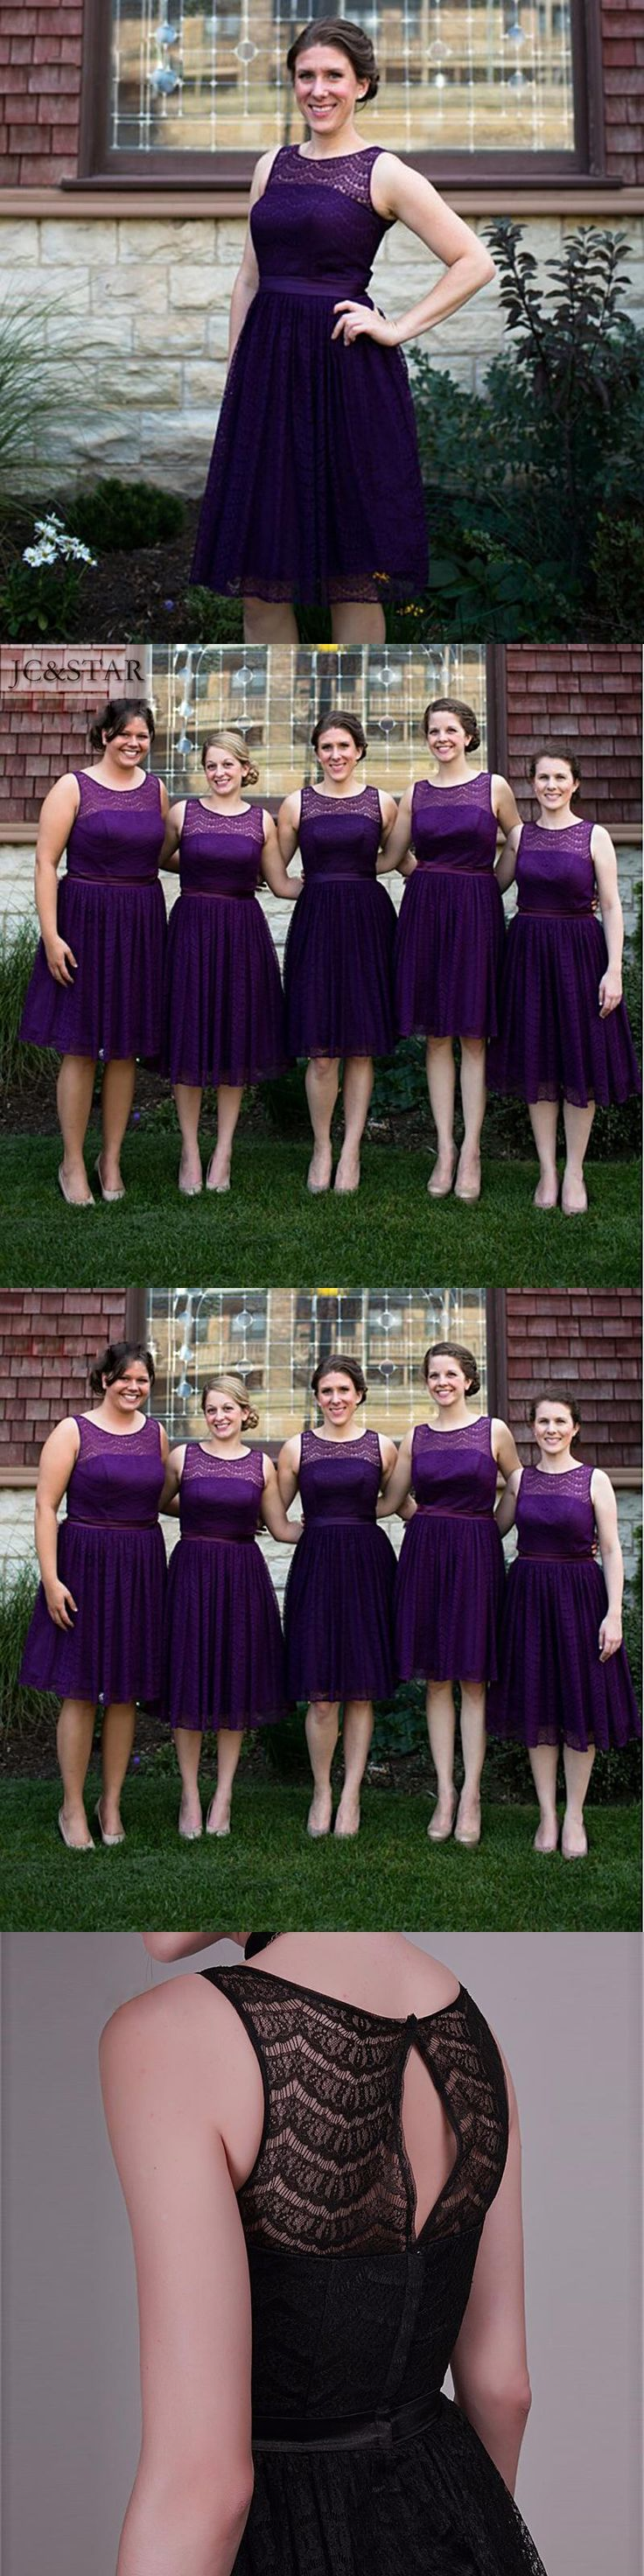 Best 25 bridesmaid dresses under 50 ideas on pinterest asos jcdstar pink white short bridesmaid dresses prom dresses 2017 lace knee length cheap bridesmaid dresses ombrellifo Gallery